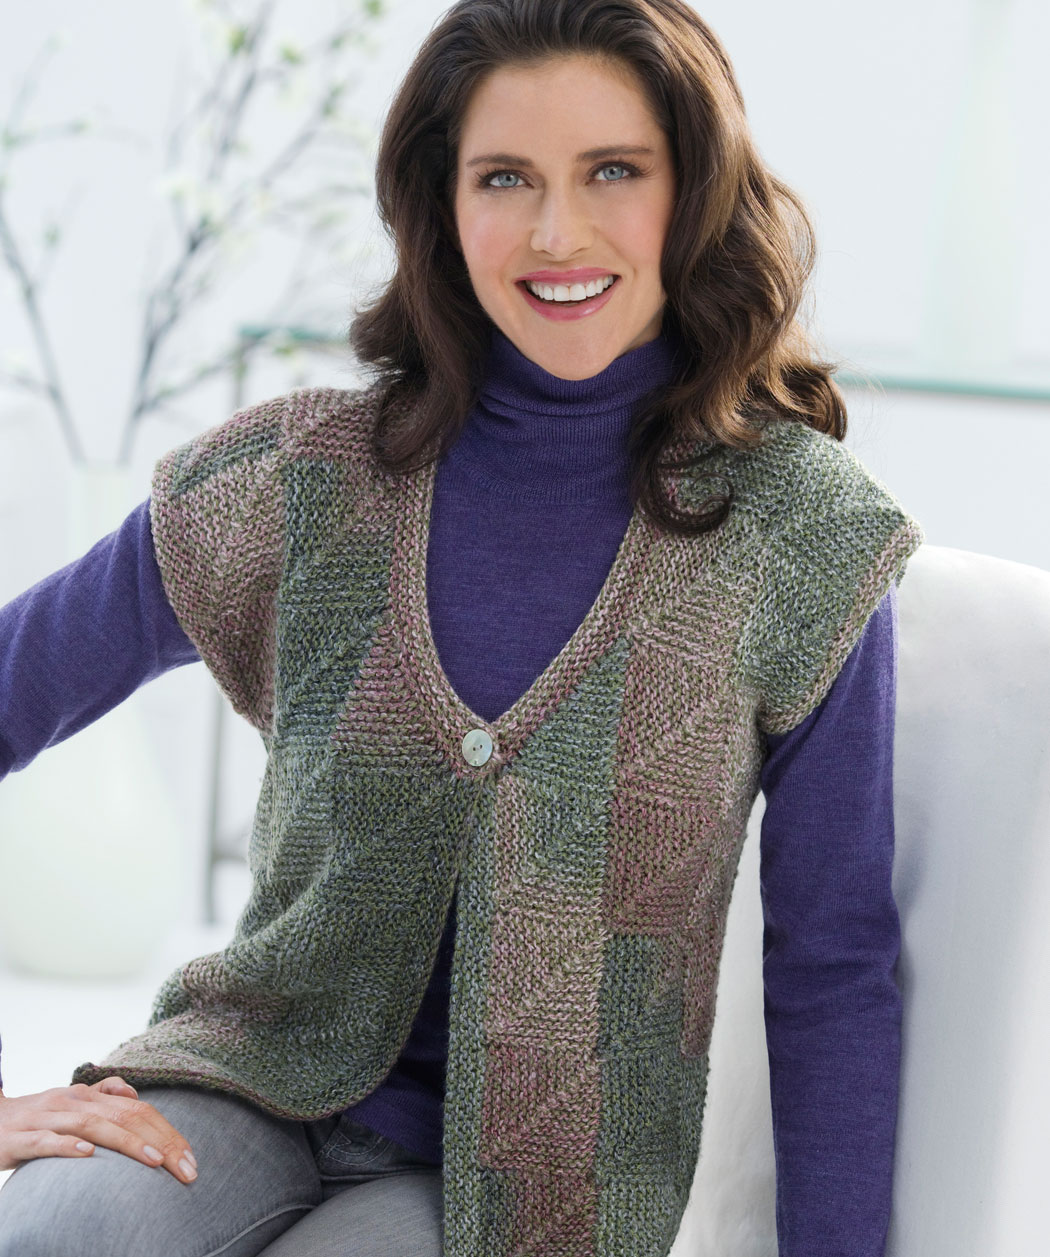 Vest Knitting Pattern Free : Knitted Vest Patterns A Knitting Blog